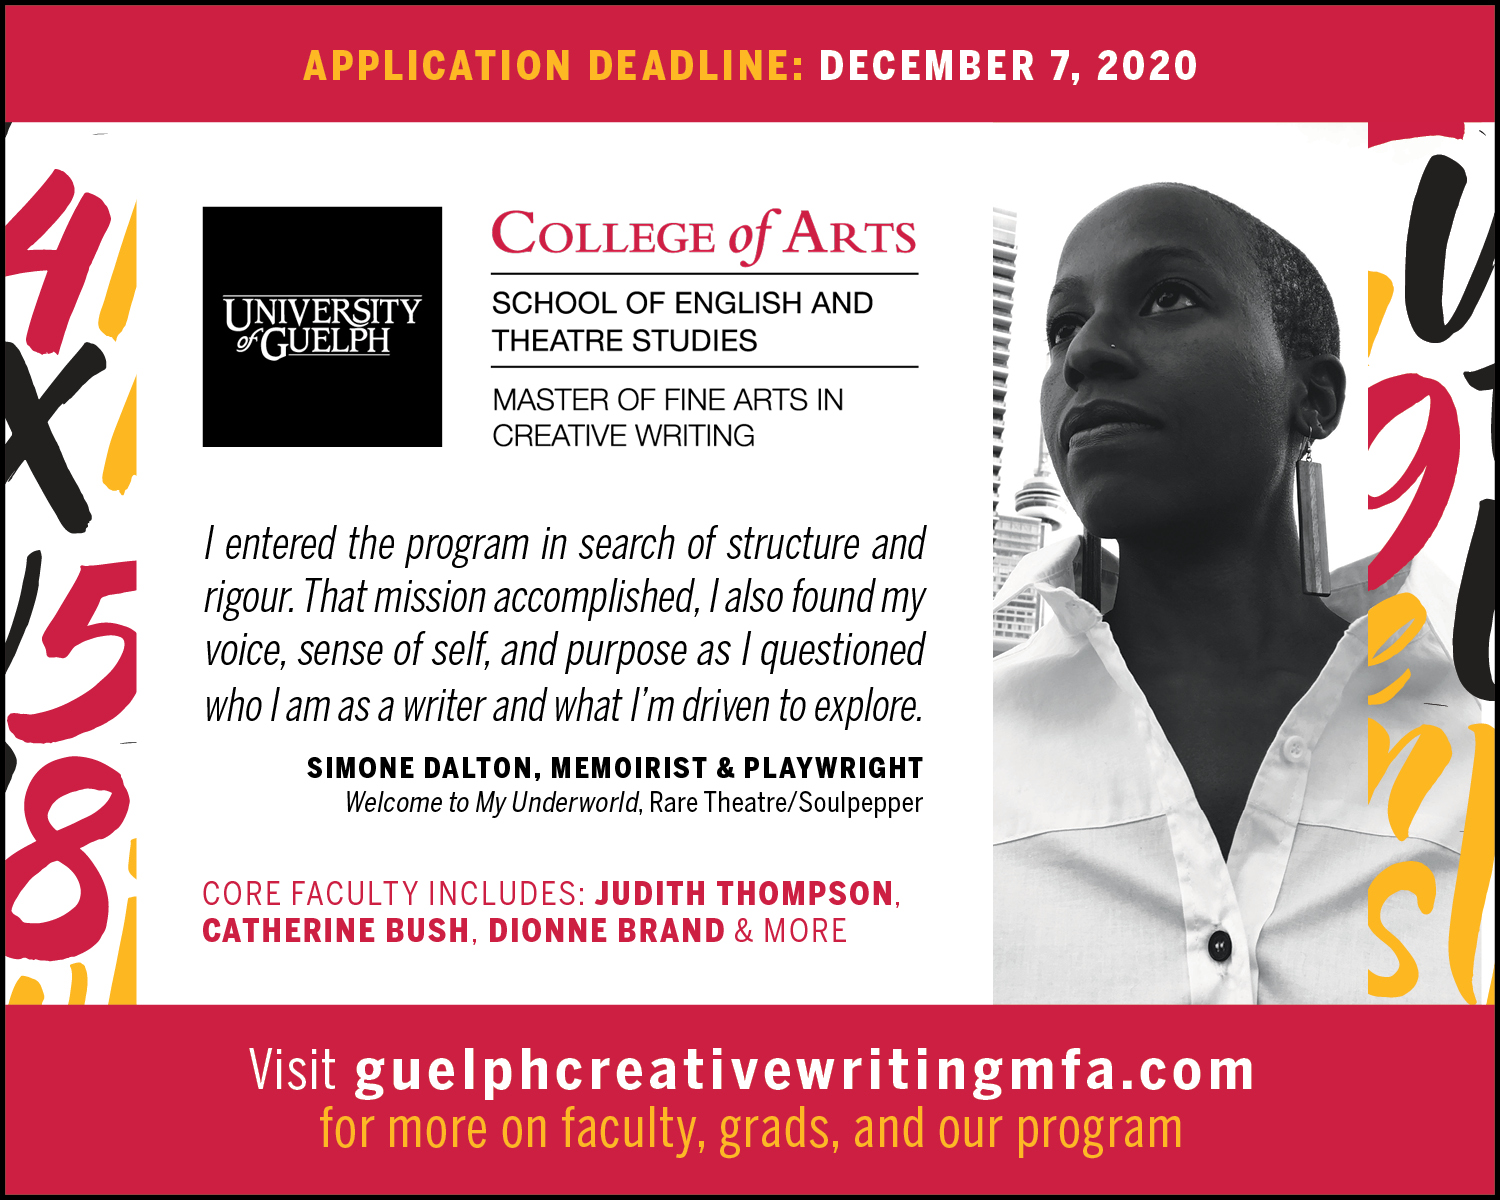 Image of memoirist and playwright Simone Dalton with a quote from them about the Guelph MFA cCreative Writing program. Application deadline December 7th.